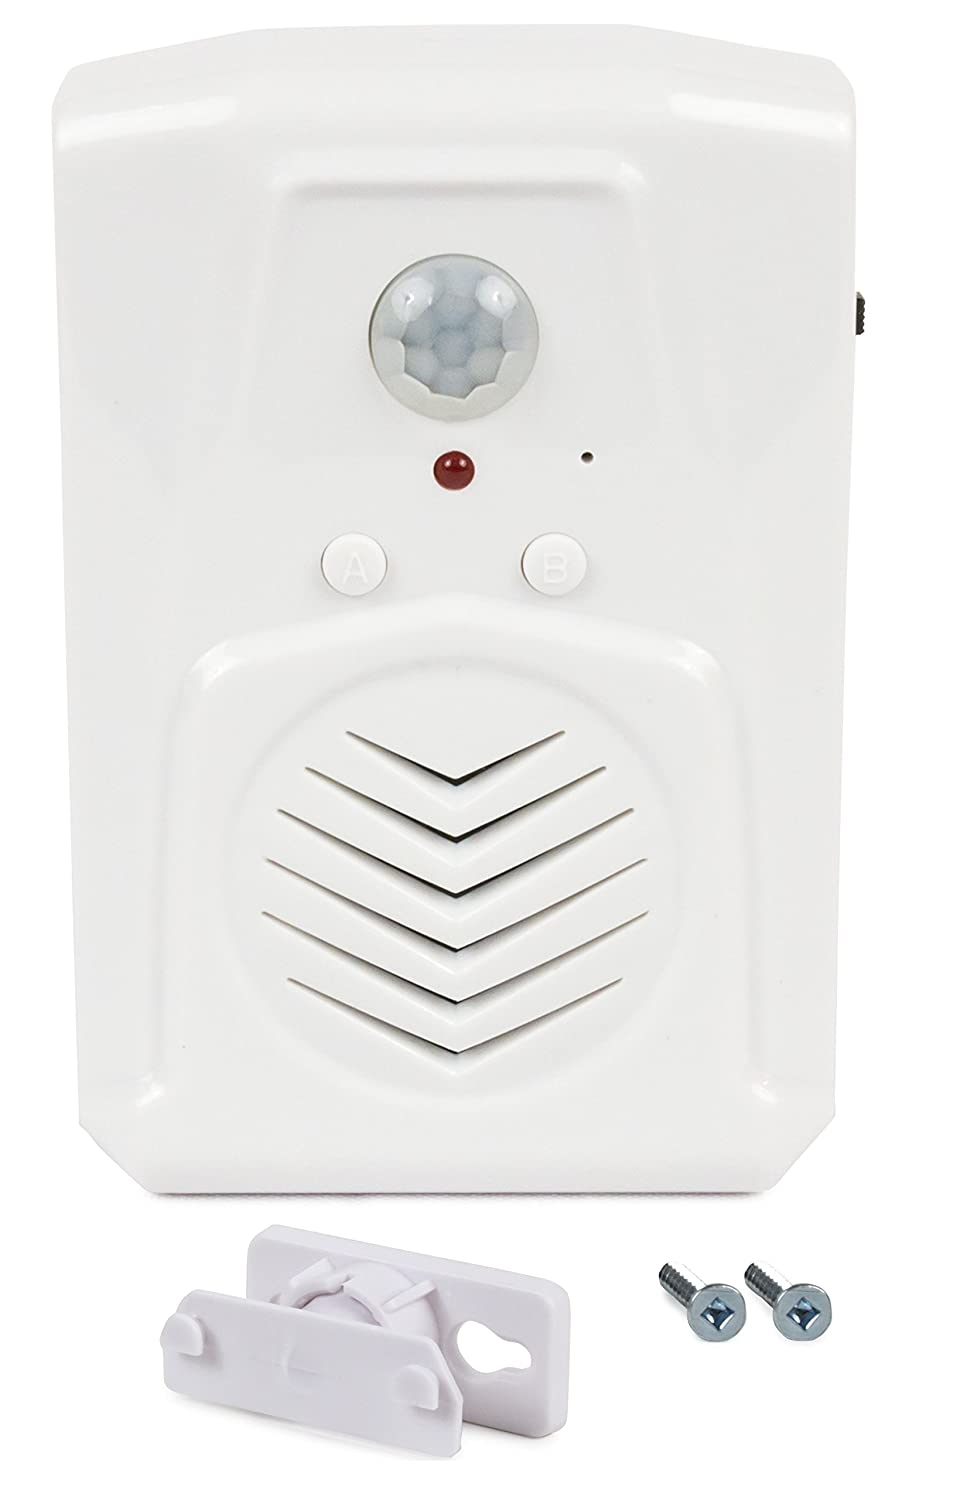 SierraTeck Motion Activated Voice Player - Recordable, Built-in Microphone  – Independent Living, Point of Sale Advertising, Door Greeter, Entry Alert